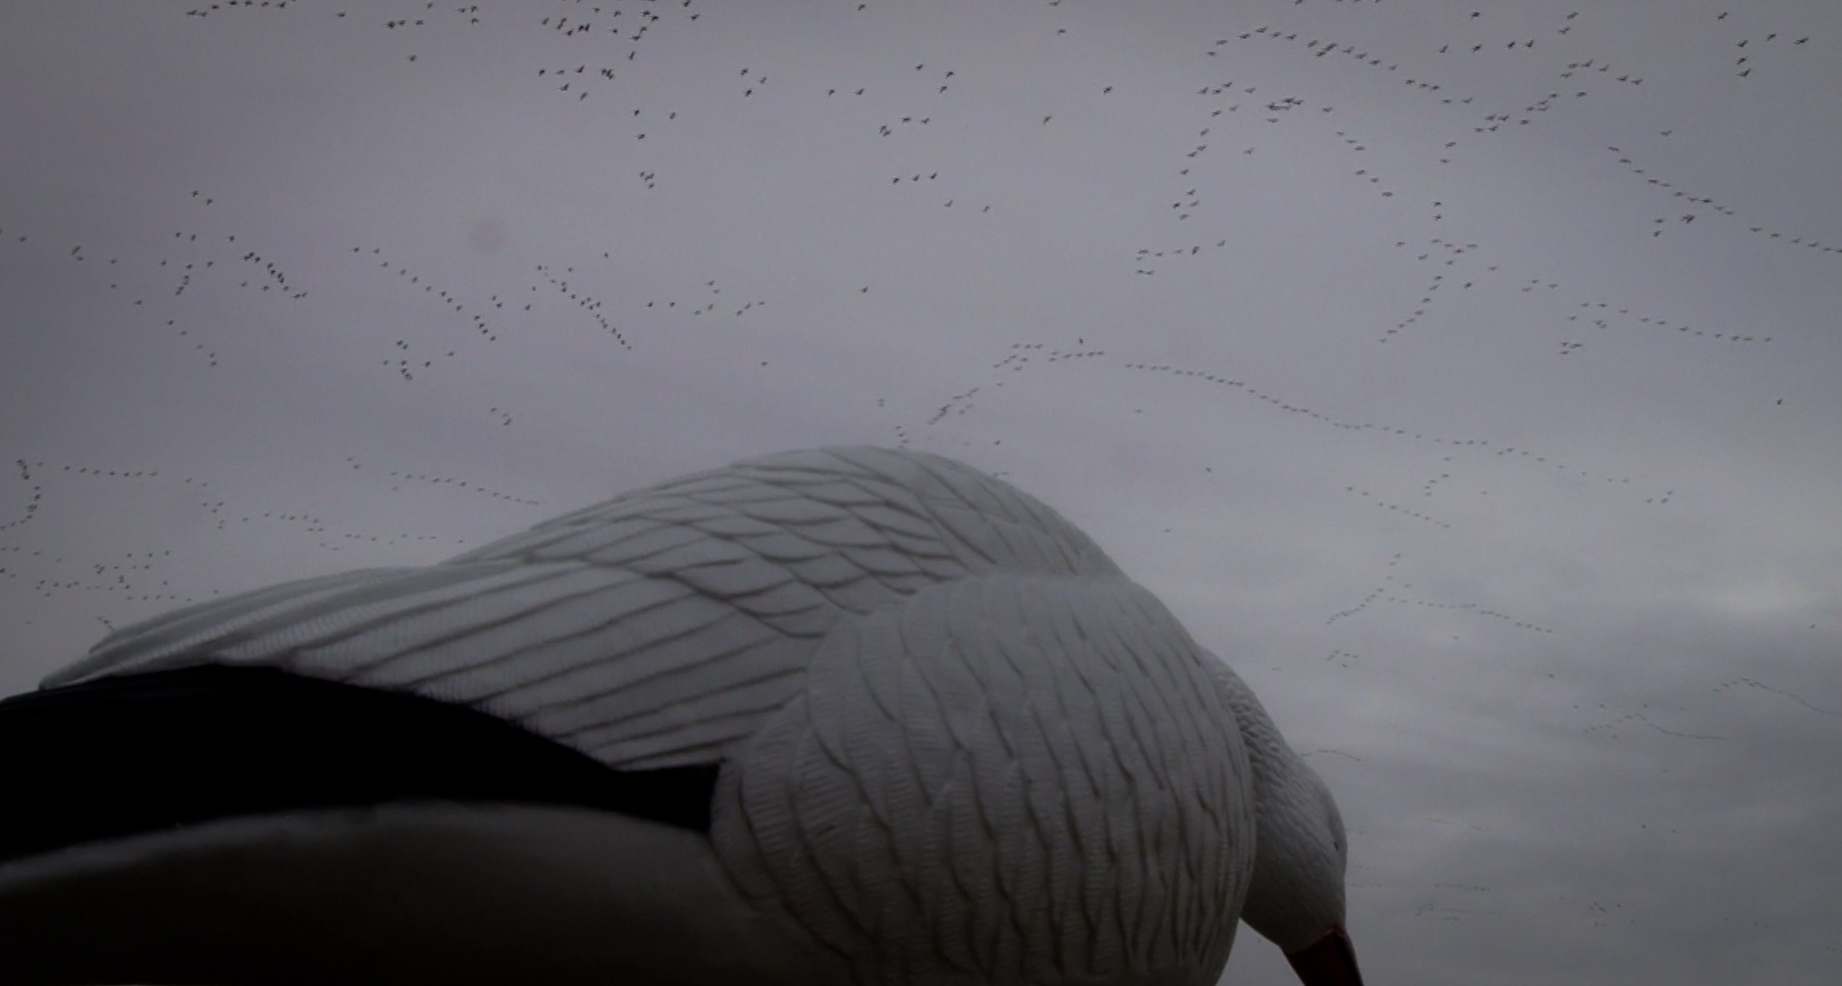 Snow Goose Migration Update – February 14th, 2014